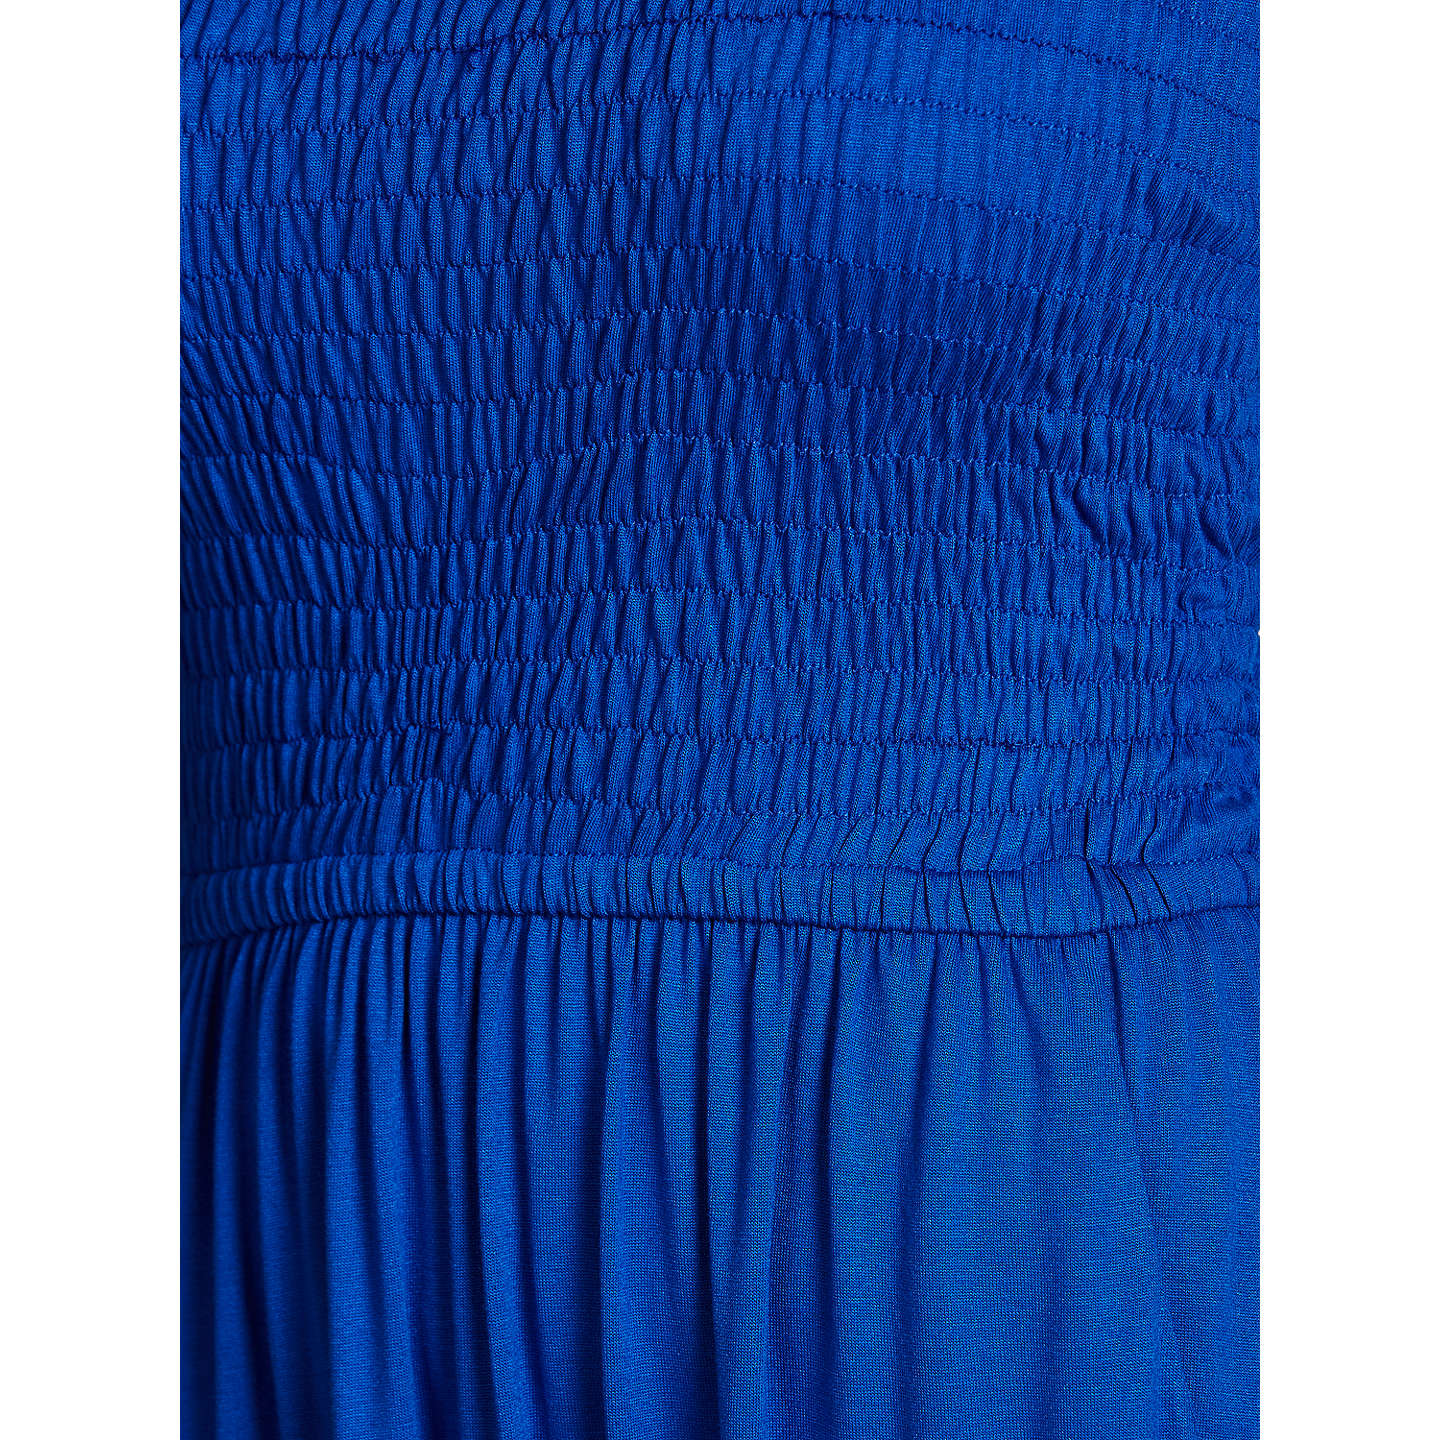 BuyJohn Lewis Jersey Bandeau Dress, Cobalt, S Online at johnlewis.com